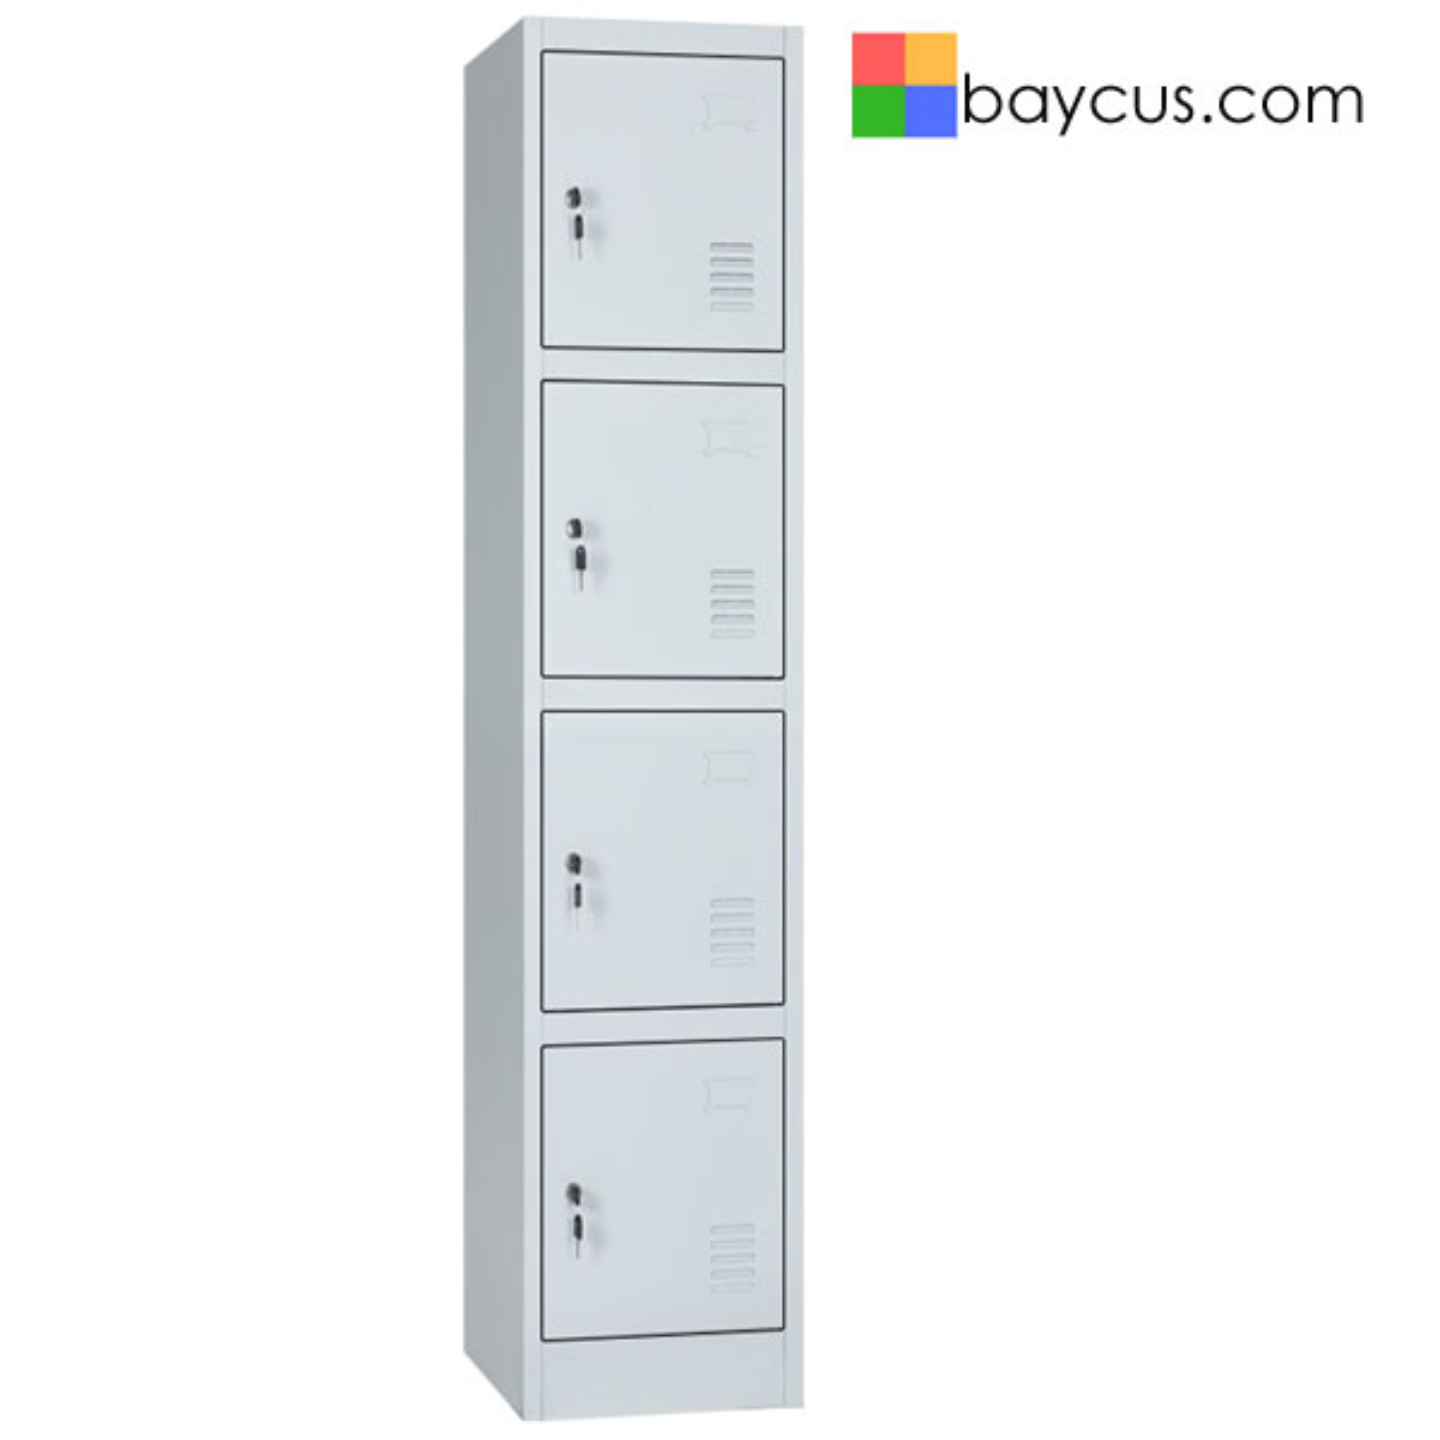 BY-BW 4 Compartment Locker